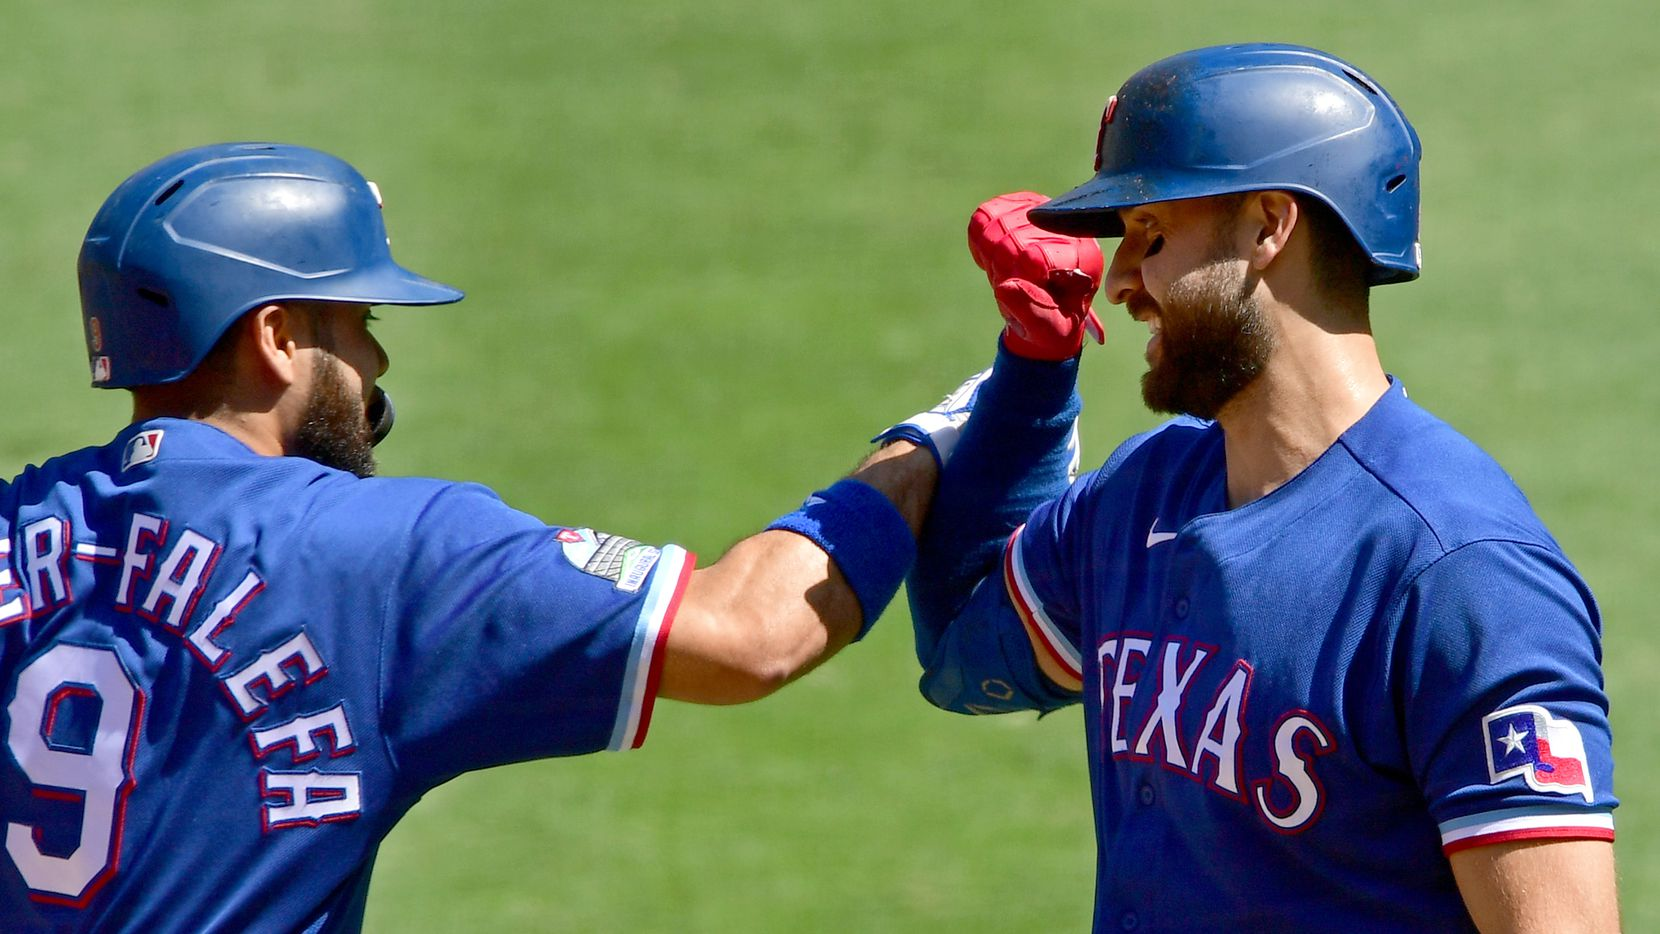 ANAHEIM, CA - SEPTEMBER 21: Isiah Kiner-Falefa #9 of the Texas Rangers is congratulated by Joey Gallo #13 after hitting a solo home run in the first inning against the Los Angeles Angels at Angel Stadium of Anaheim on September 21, 2020 in Anaheim, California.